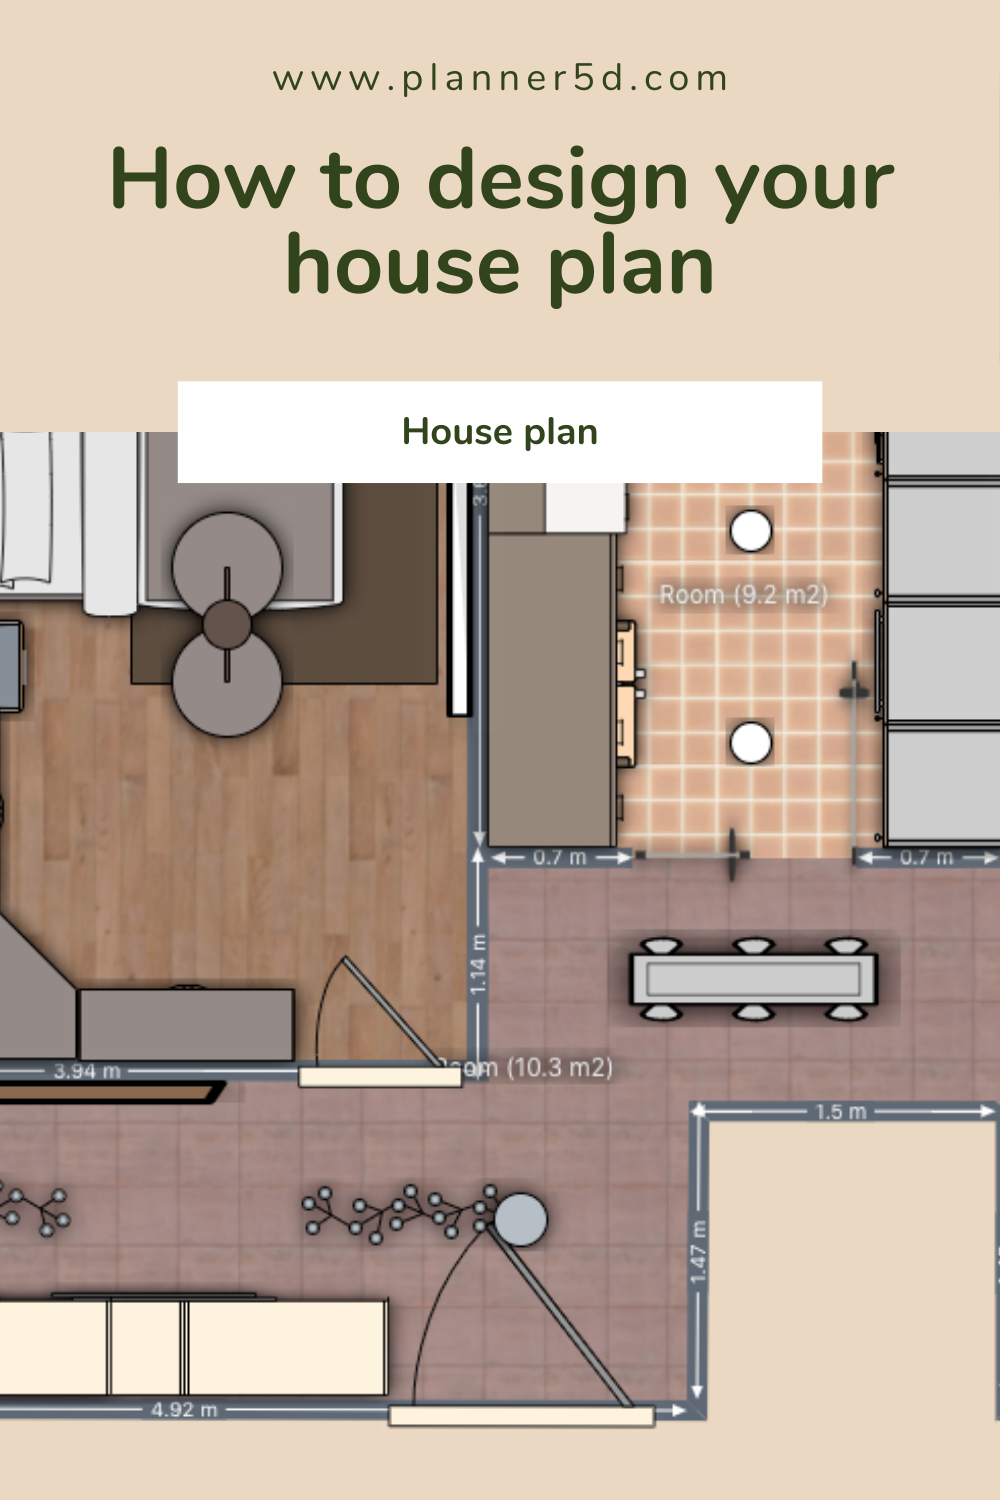 Extraordinary 25x40 House Plan Images Best Inspiration Home Design Exceptional Besthomedesigns 20x40 House Plans House Plans New House Plans